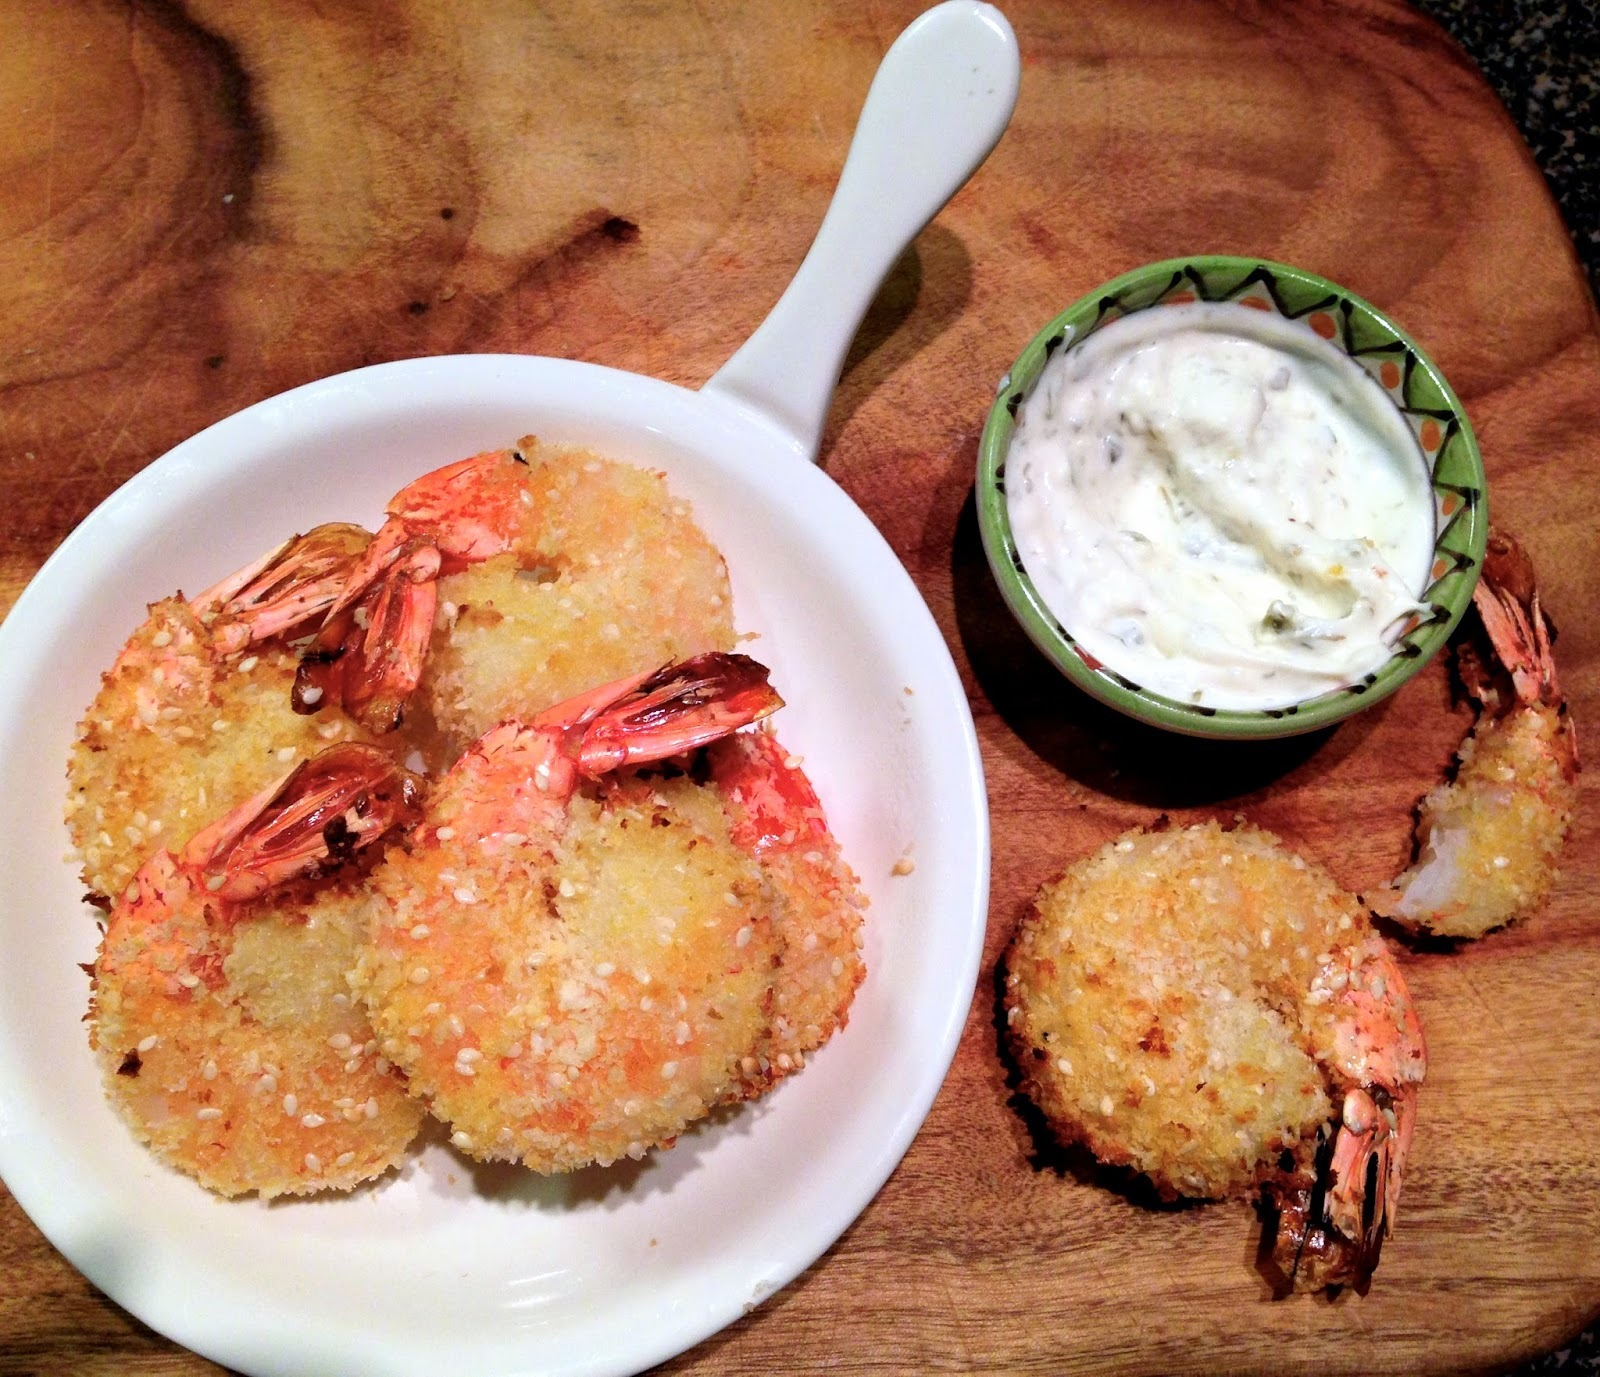 Sesame Crumbed Prawns with Lemon Caper Aioli